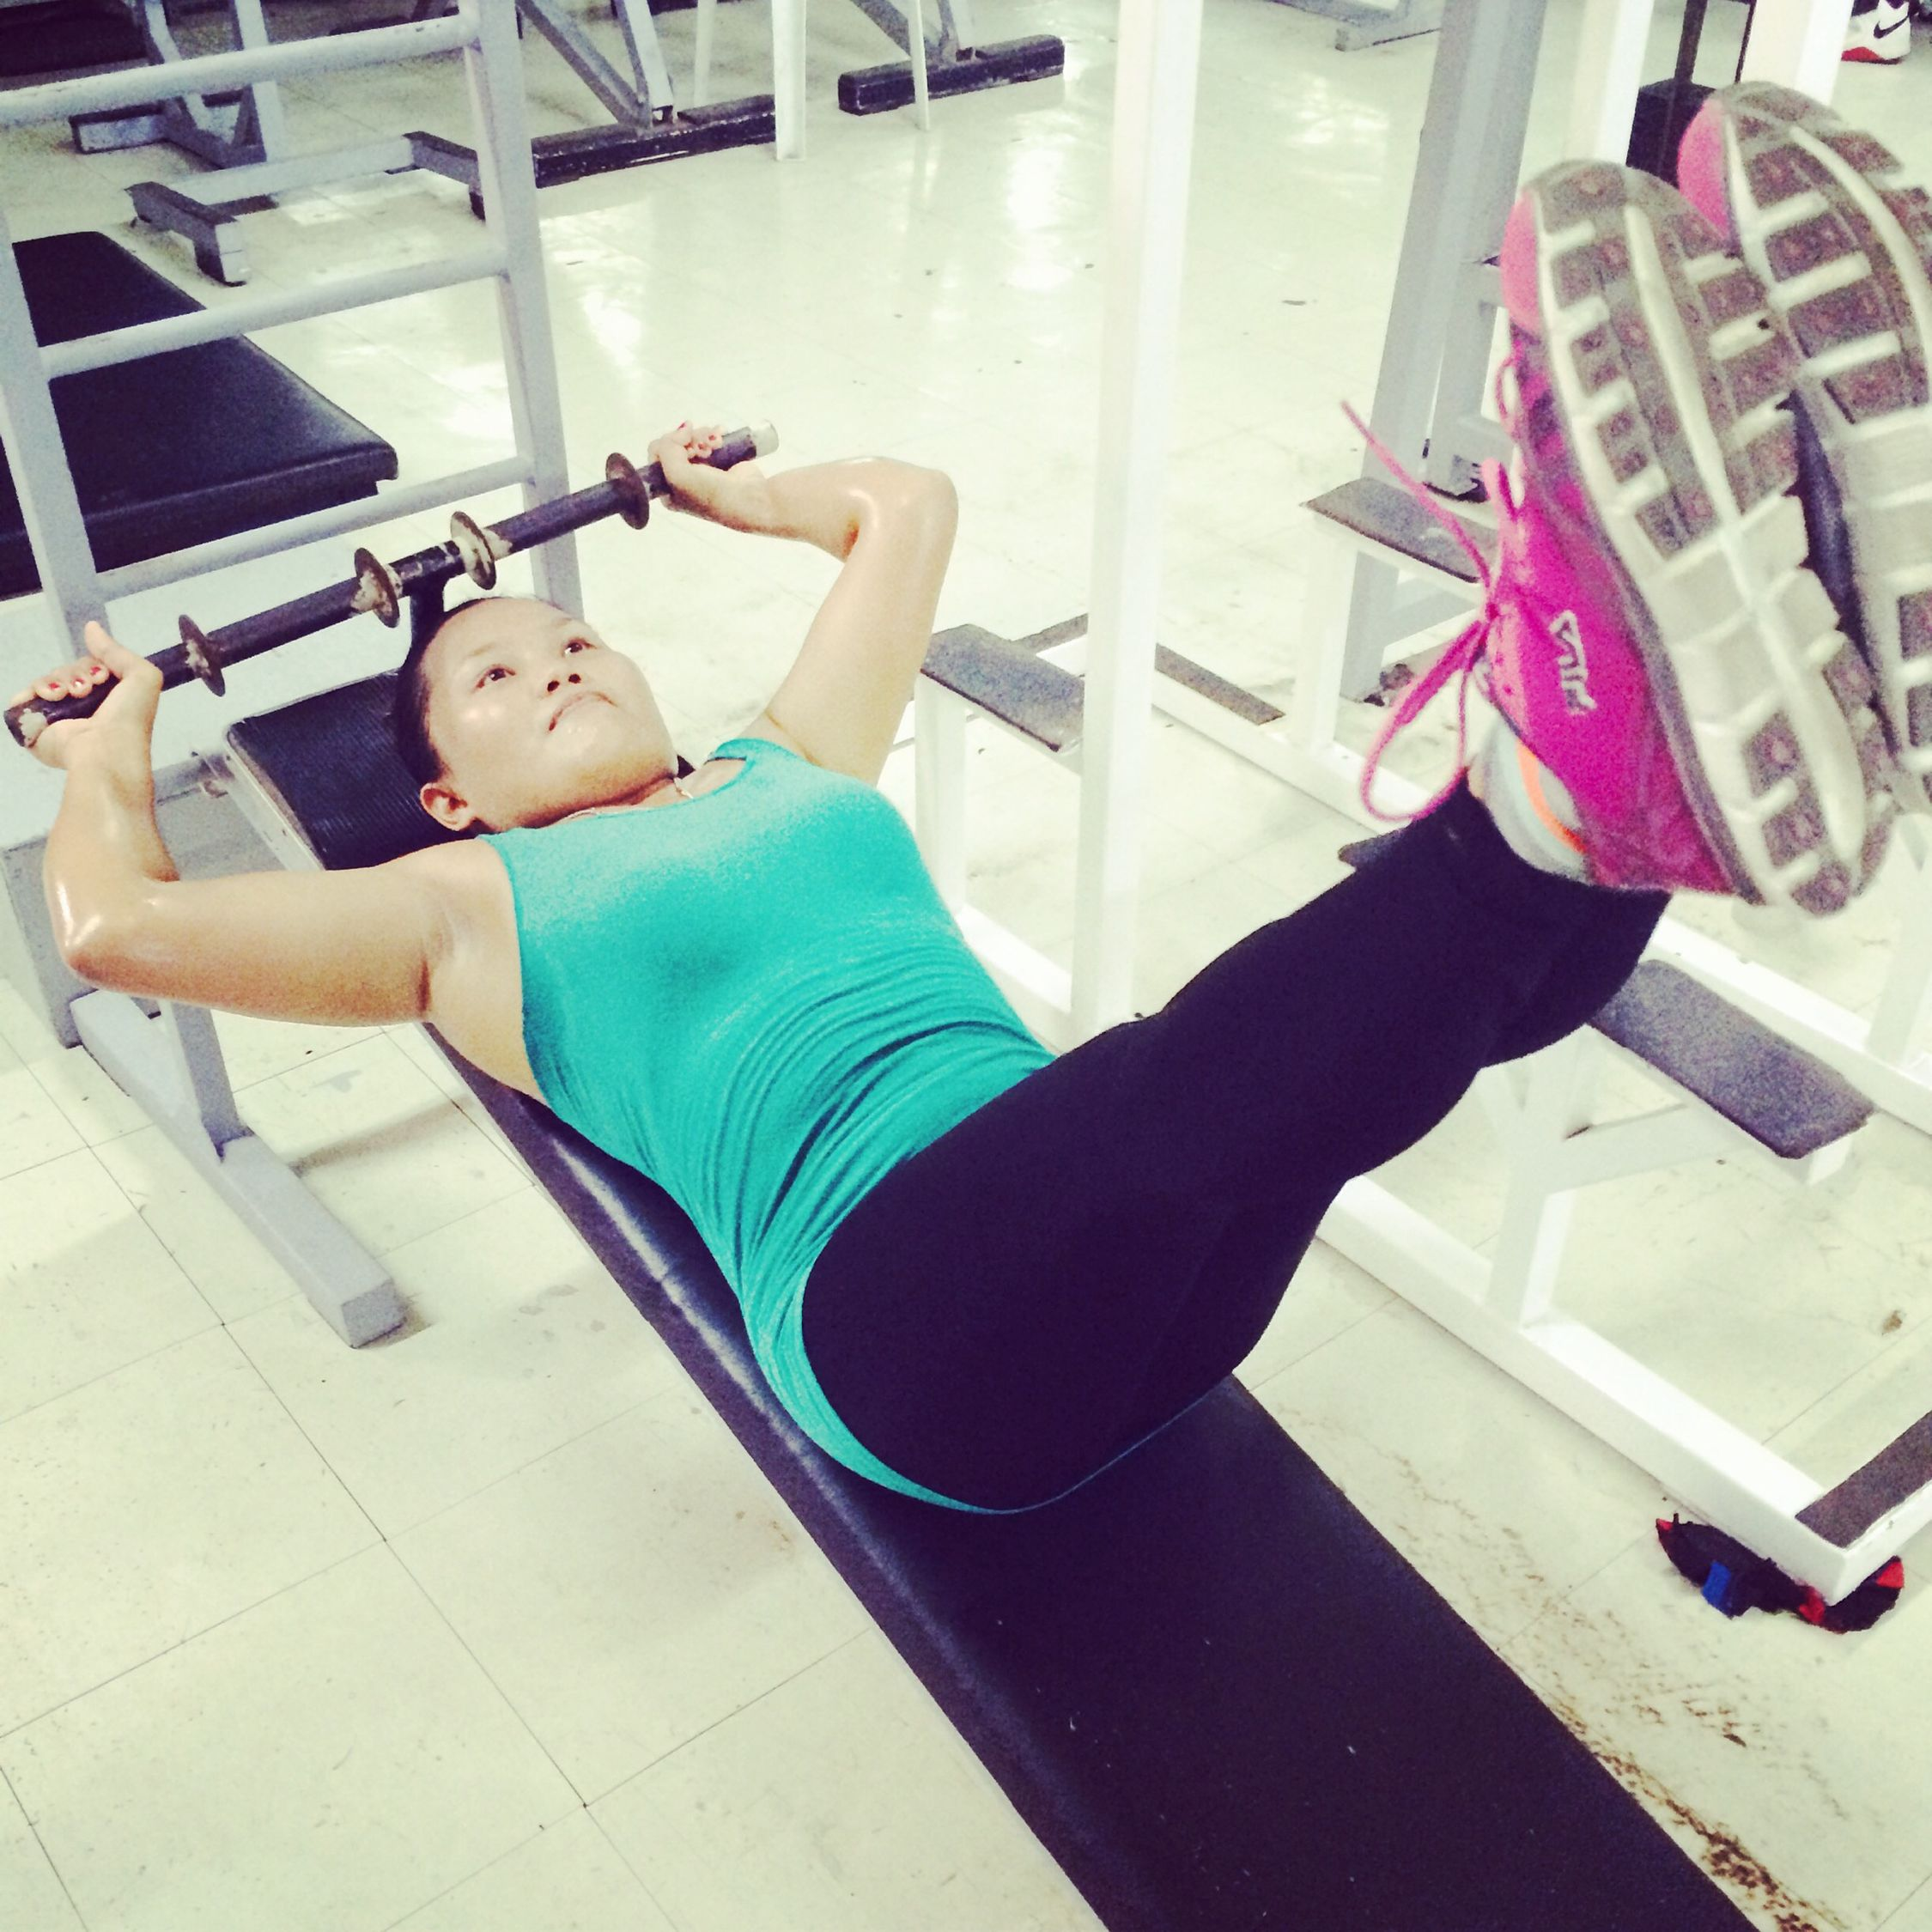 Working out! ????